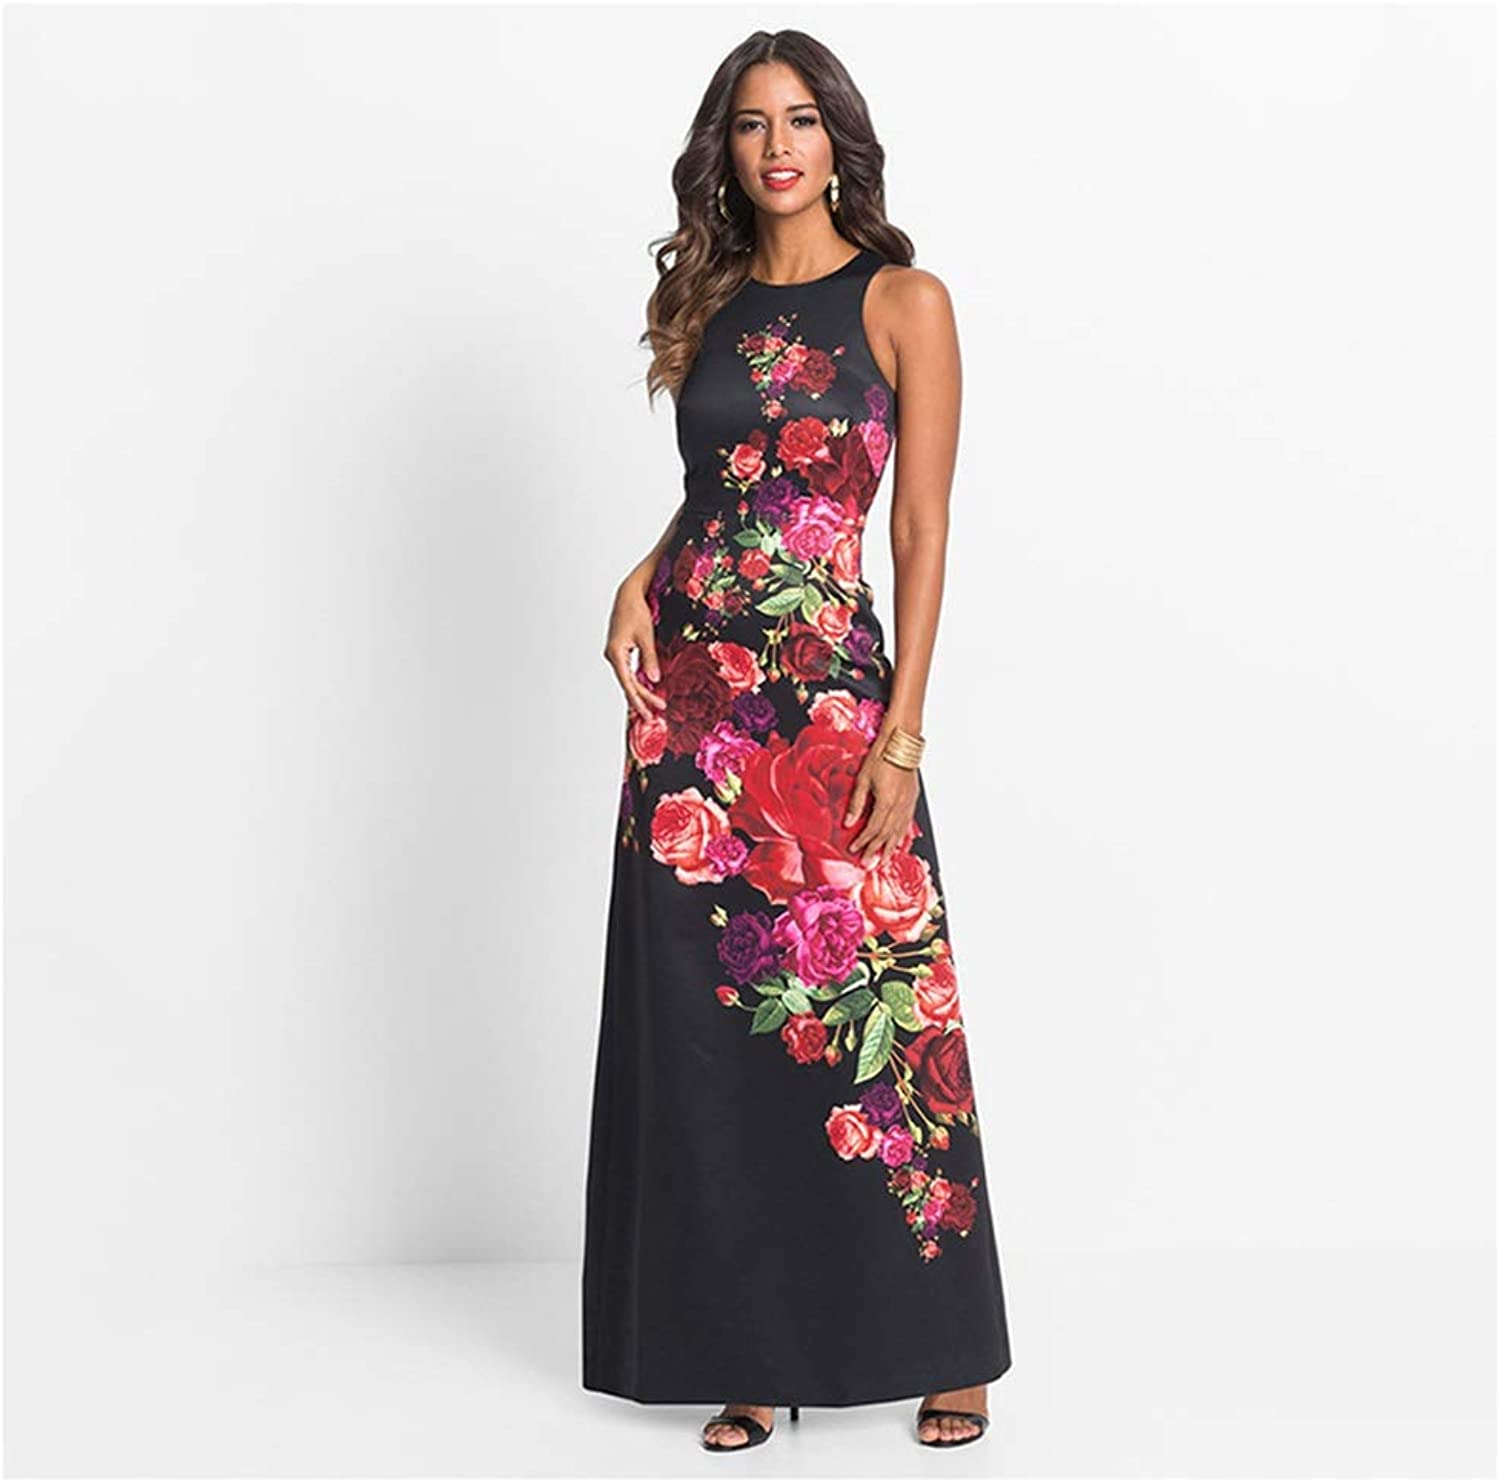 CARRY Dress, Europe and America, Comfortable and Soft Ladies Cocktail Dress Vest Waist Dress Print Dress (Size   XL)